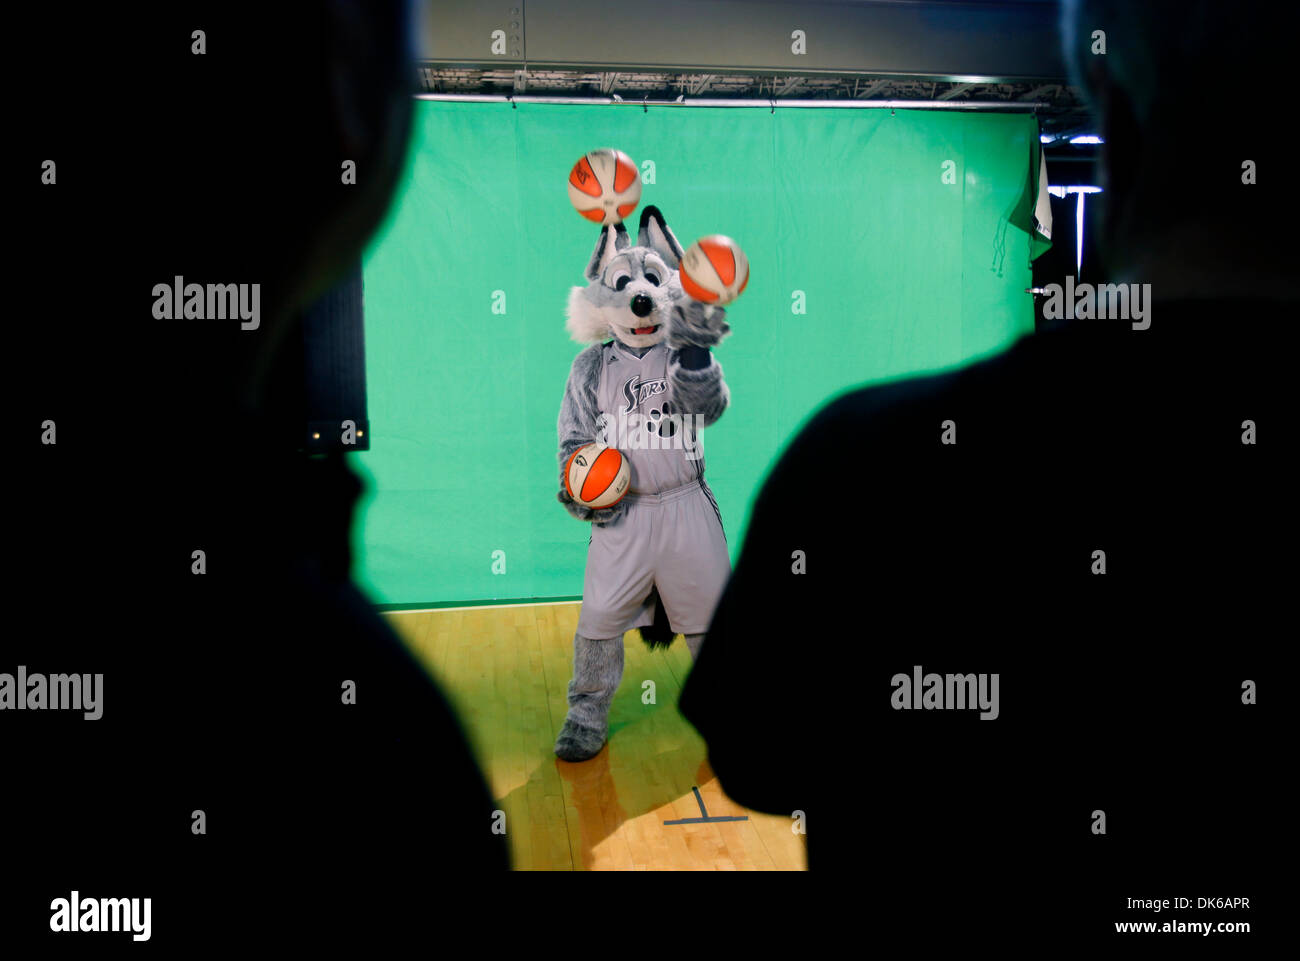 May 19, 2011 - San Antonio, TEXAS, USA - The WNBA's Silver Stars mascot, The Fox, performs in front of a green screen Wednesday May18, 2011 at their practice facility, the Antioch Baptist Church recreation center, during the team's media day. (Credit Image: © San Antonio Express-News/ZUMAPRESS.com) - Stock Image